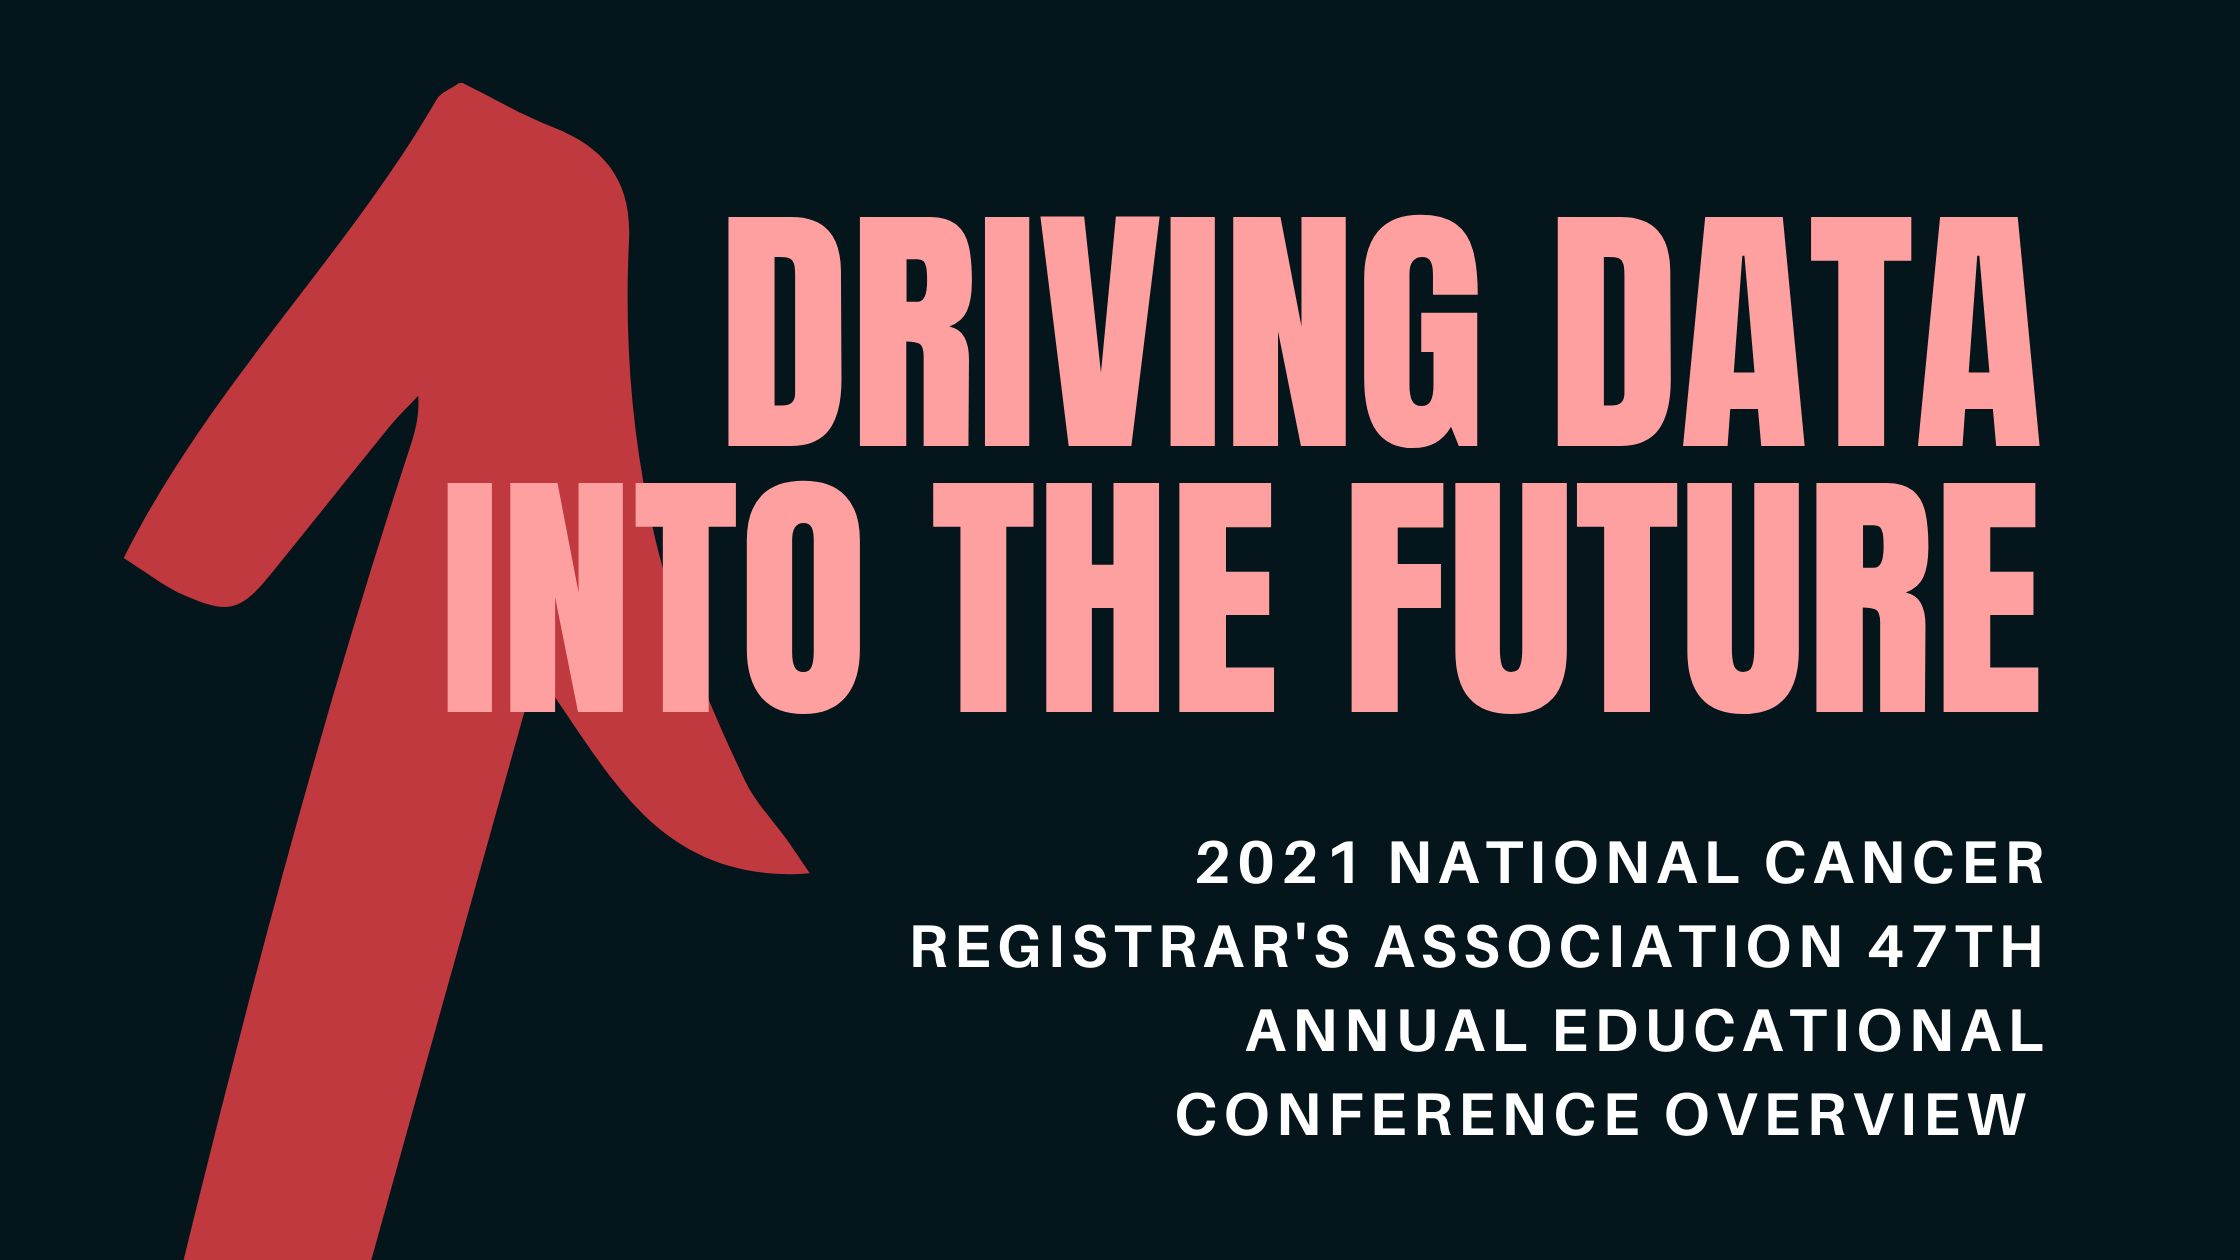 Driving Data into the Future: NCRA Conference Overview